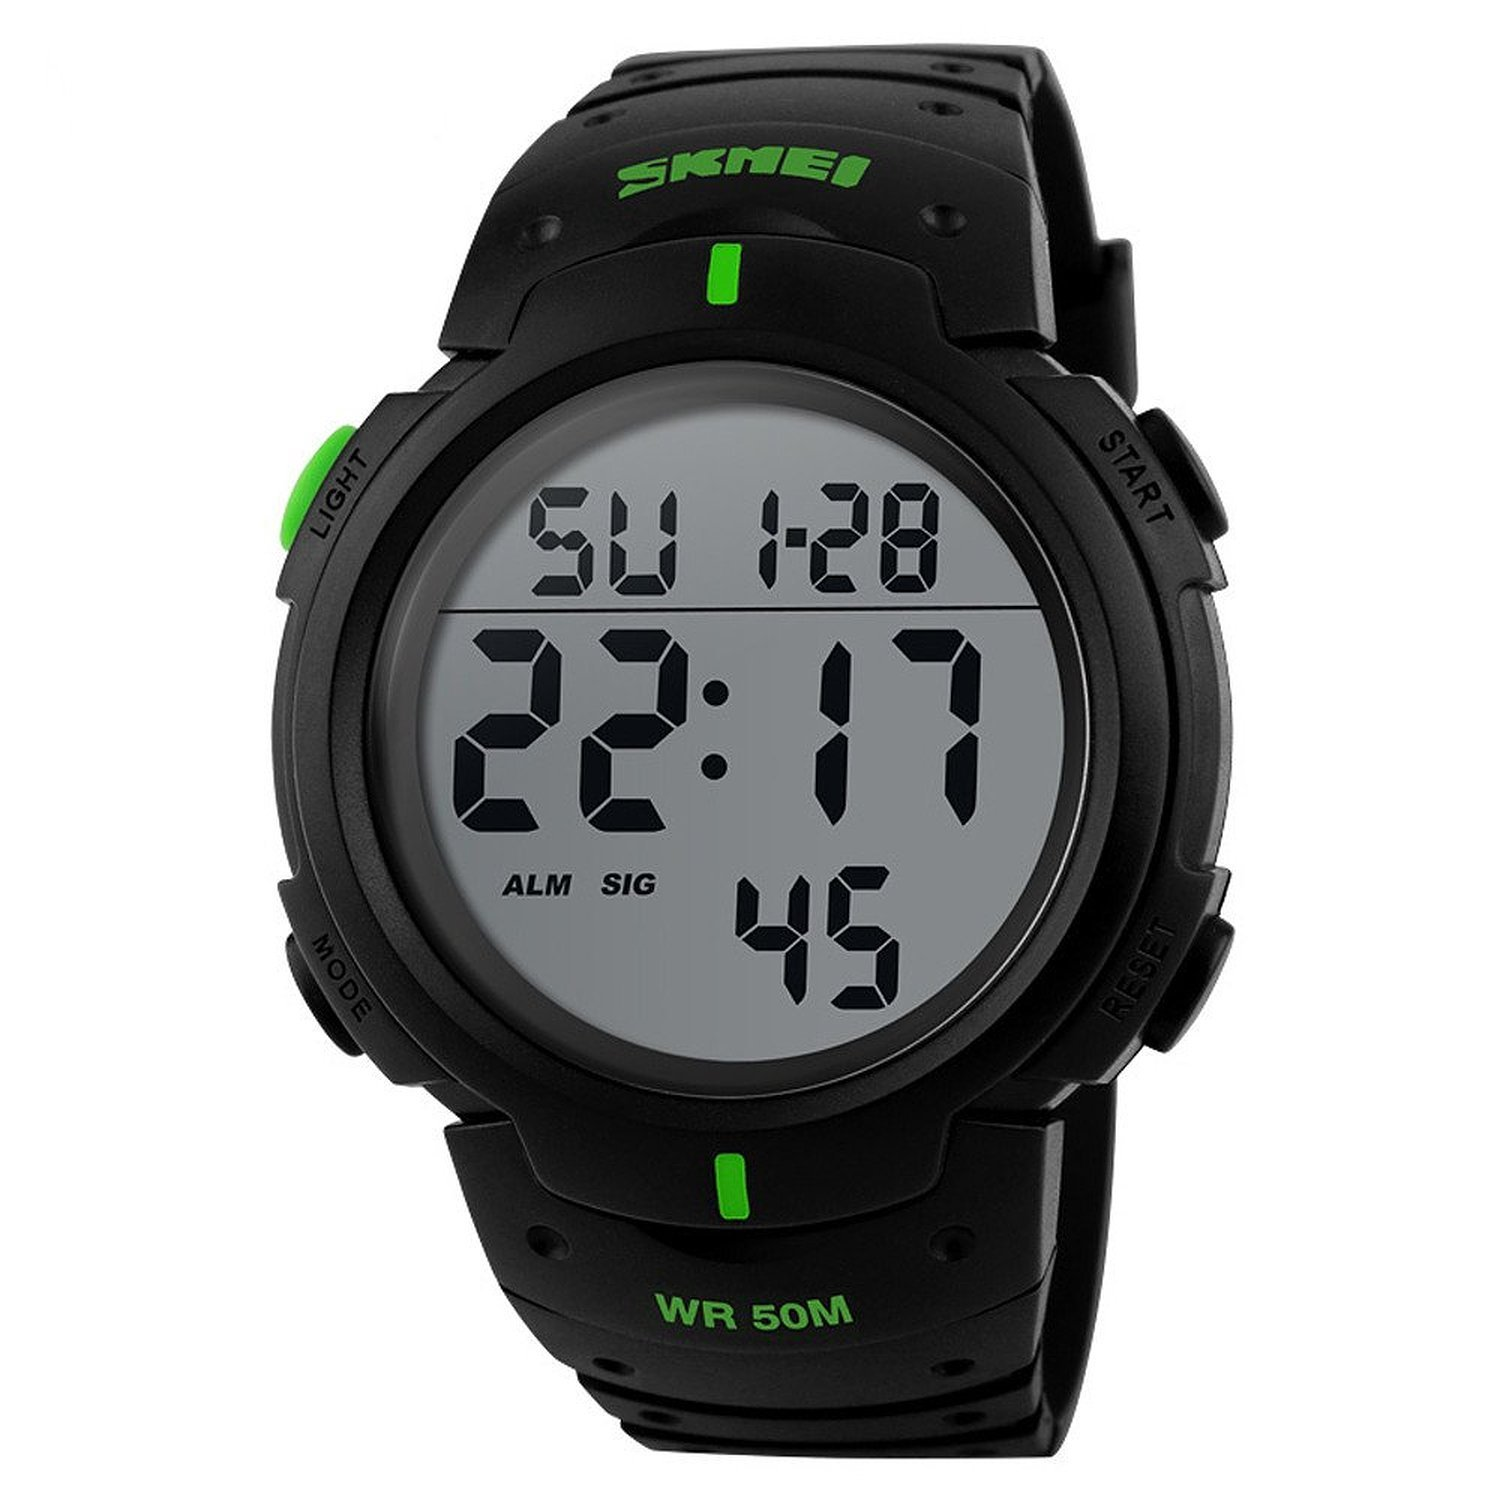 Gosasa Digital Sports Watch LED Screen Large Face Military Watches and Waterproof Casual Luminous Simple Watch